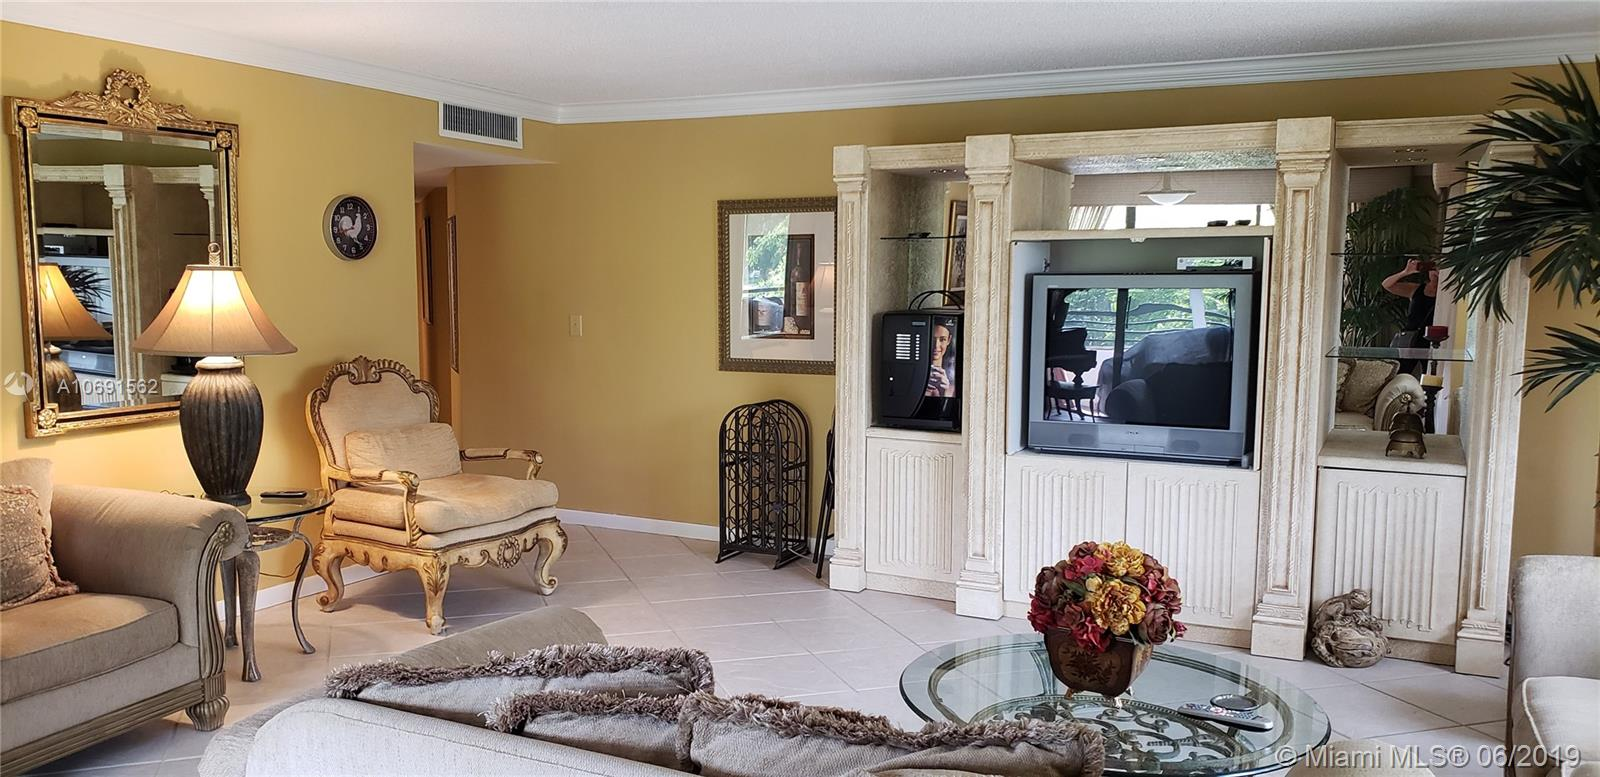 1490  Sheridan St #20A For Sale A10691562, FL